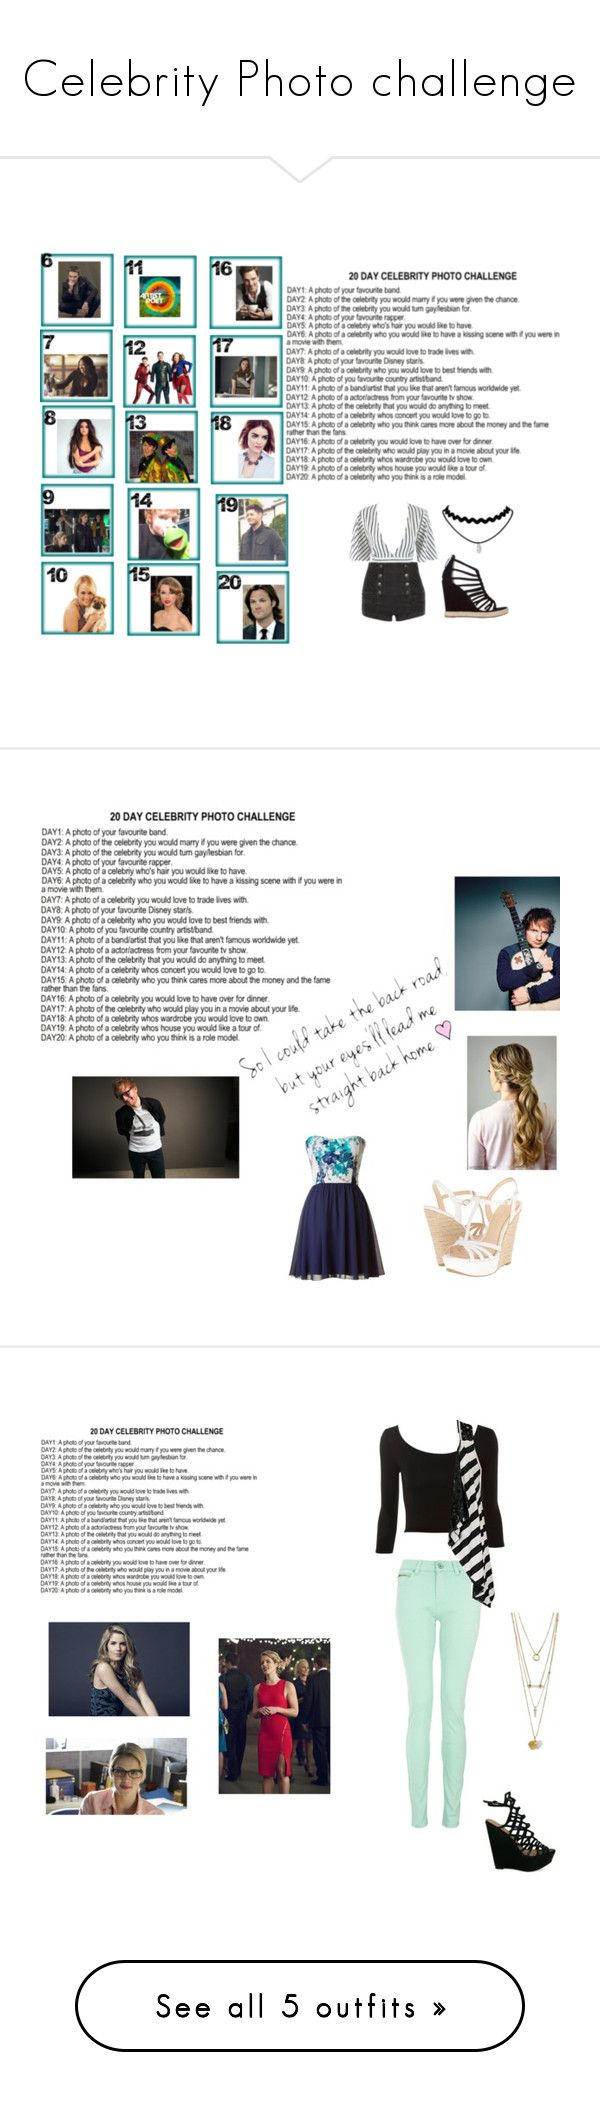 """""""Celebrity Photo challenge"""" by mercy-xix ❤ liked on Polyvore featuring GET LOST, Pierre Balmain, Jean-Michel Cazabat, Jessica Simpson, Quiz, Daytrip, Camille la Vie, Jimmy Choo and art"""